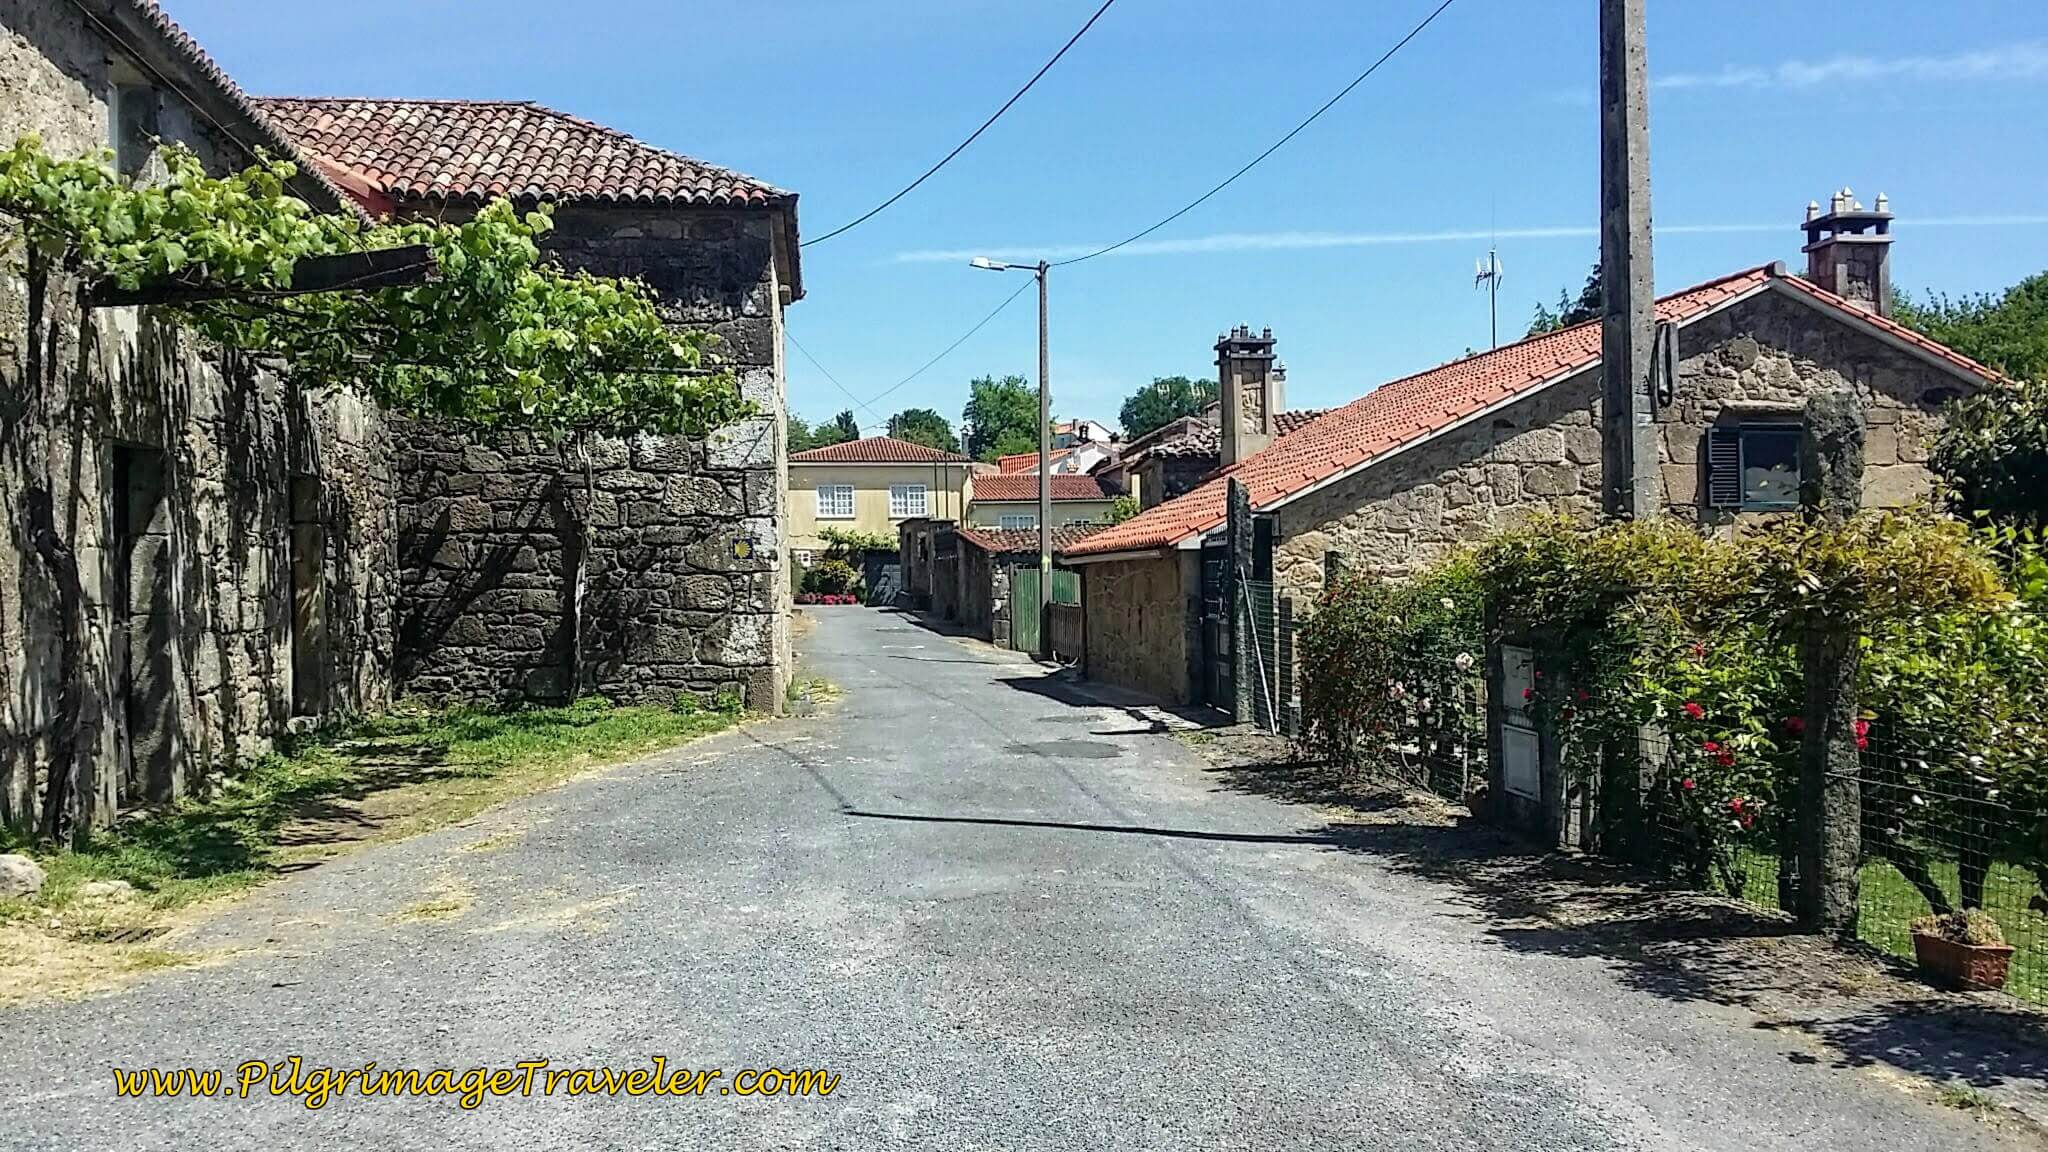 Day Twenty Four On The Camino Portugu S Valga To Milladouro # Muebles Buxo Castro